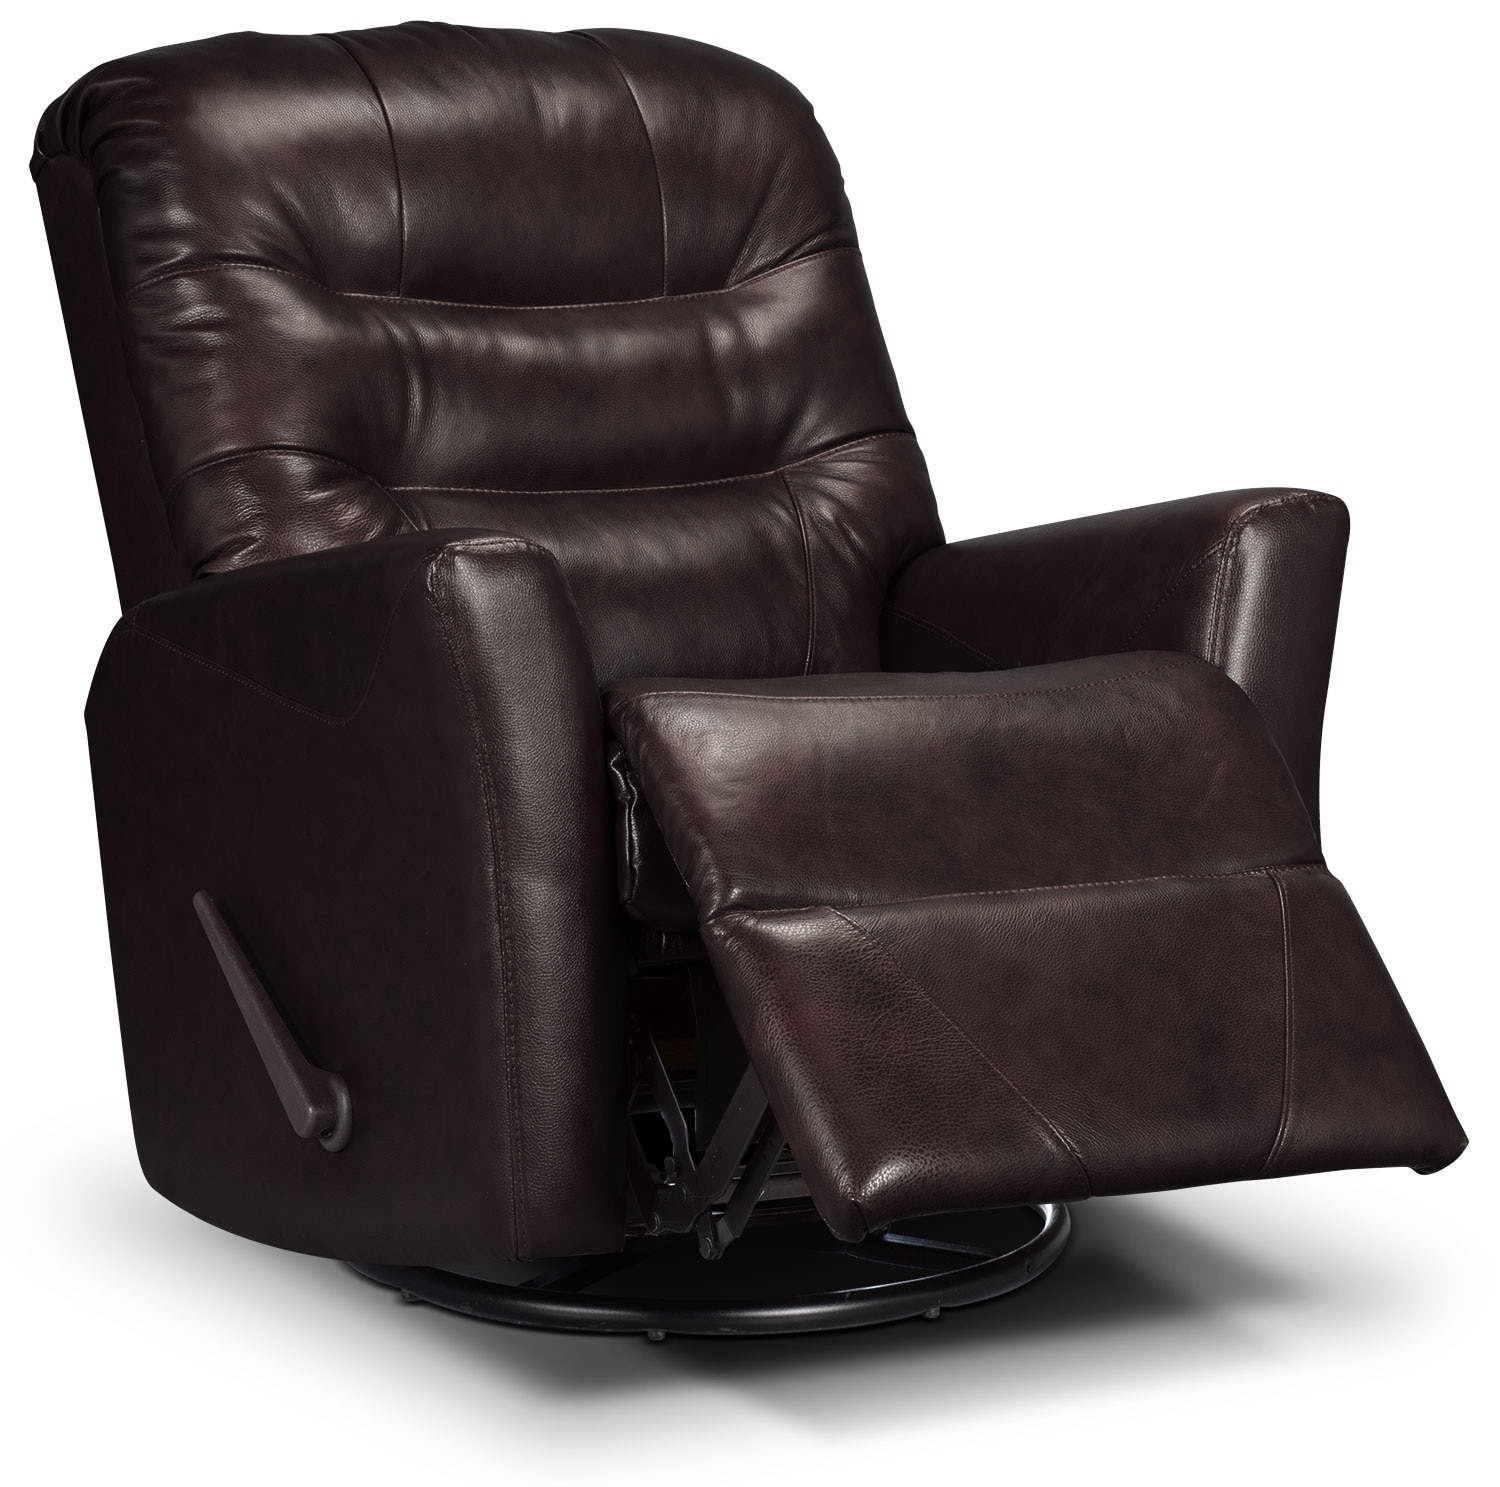 Designed2B Recliner 4560 Bonded Leather Swivel Glider Recliner - Chocolate